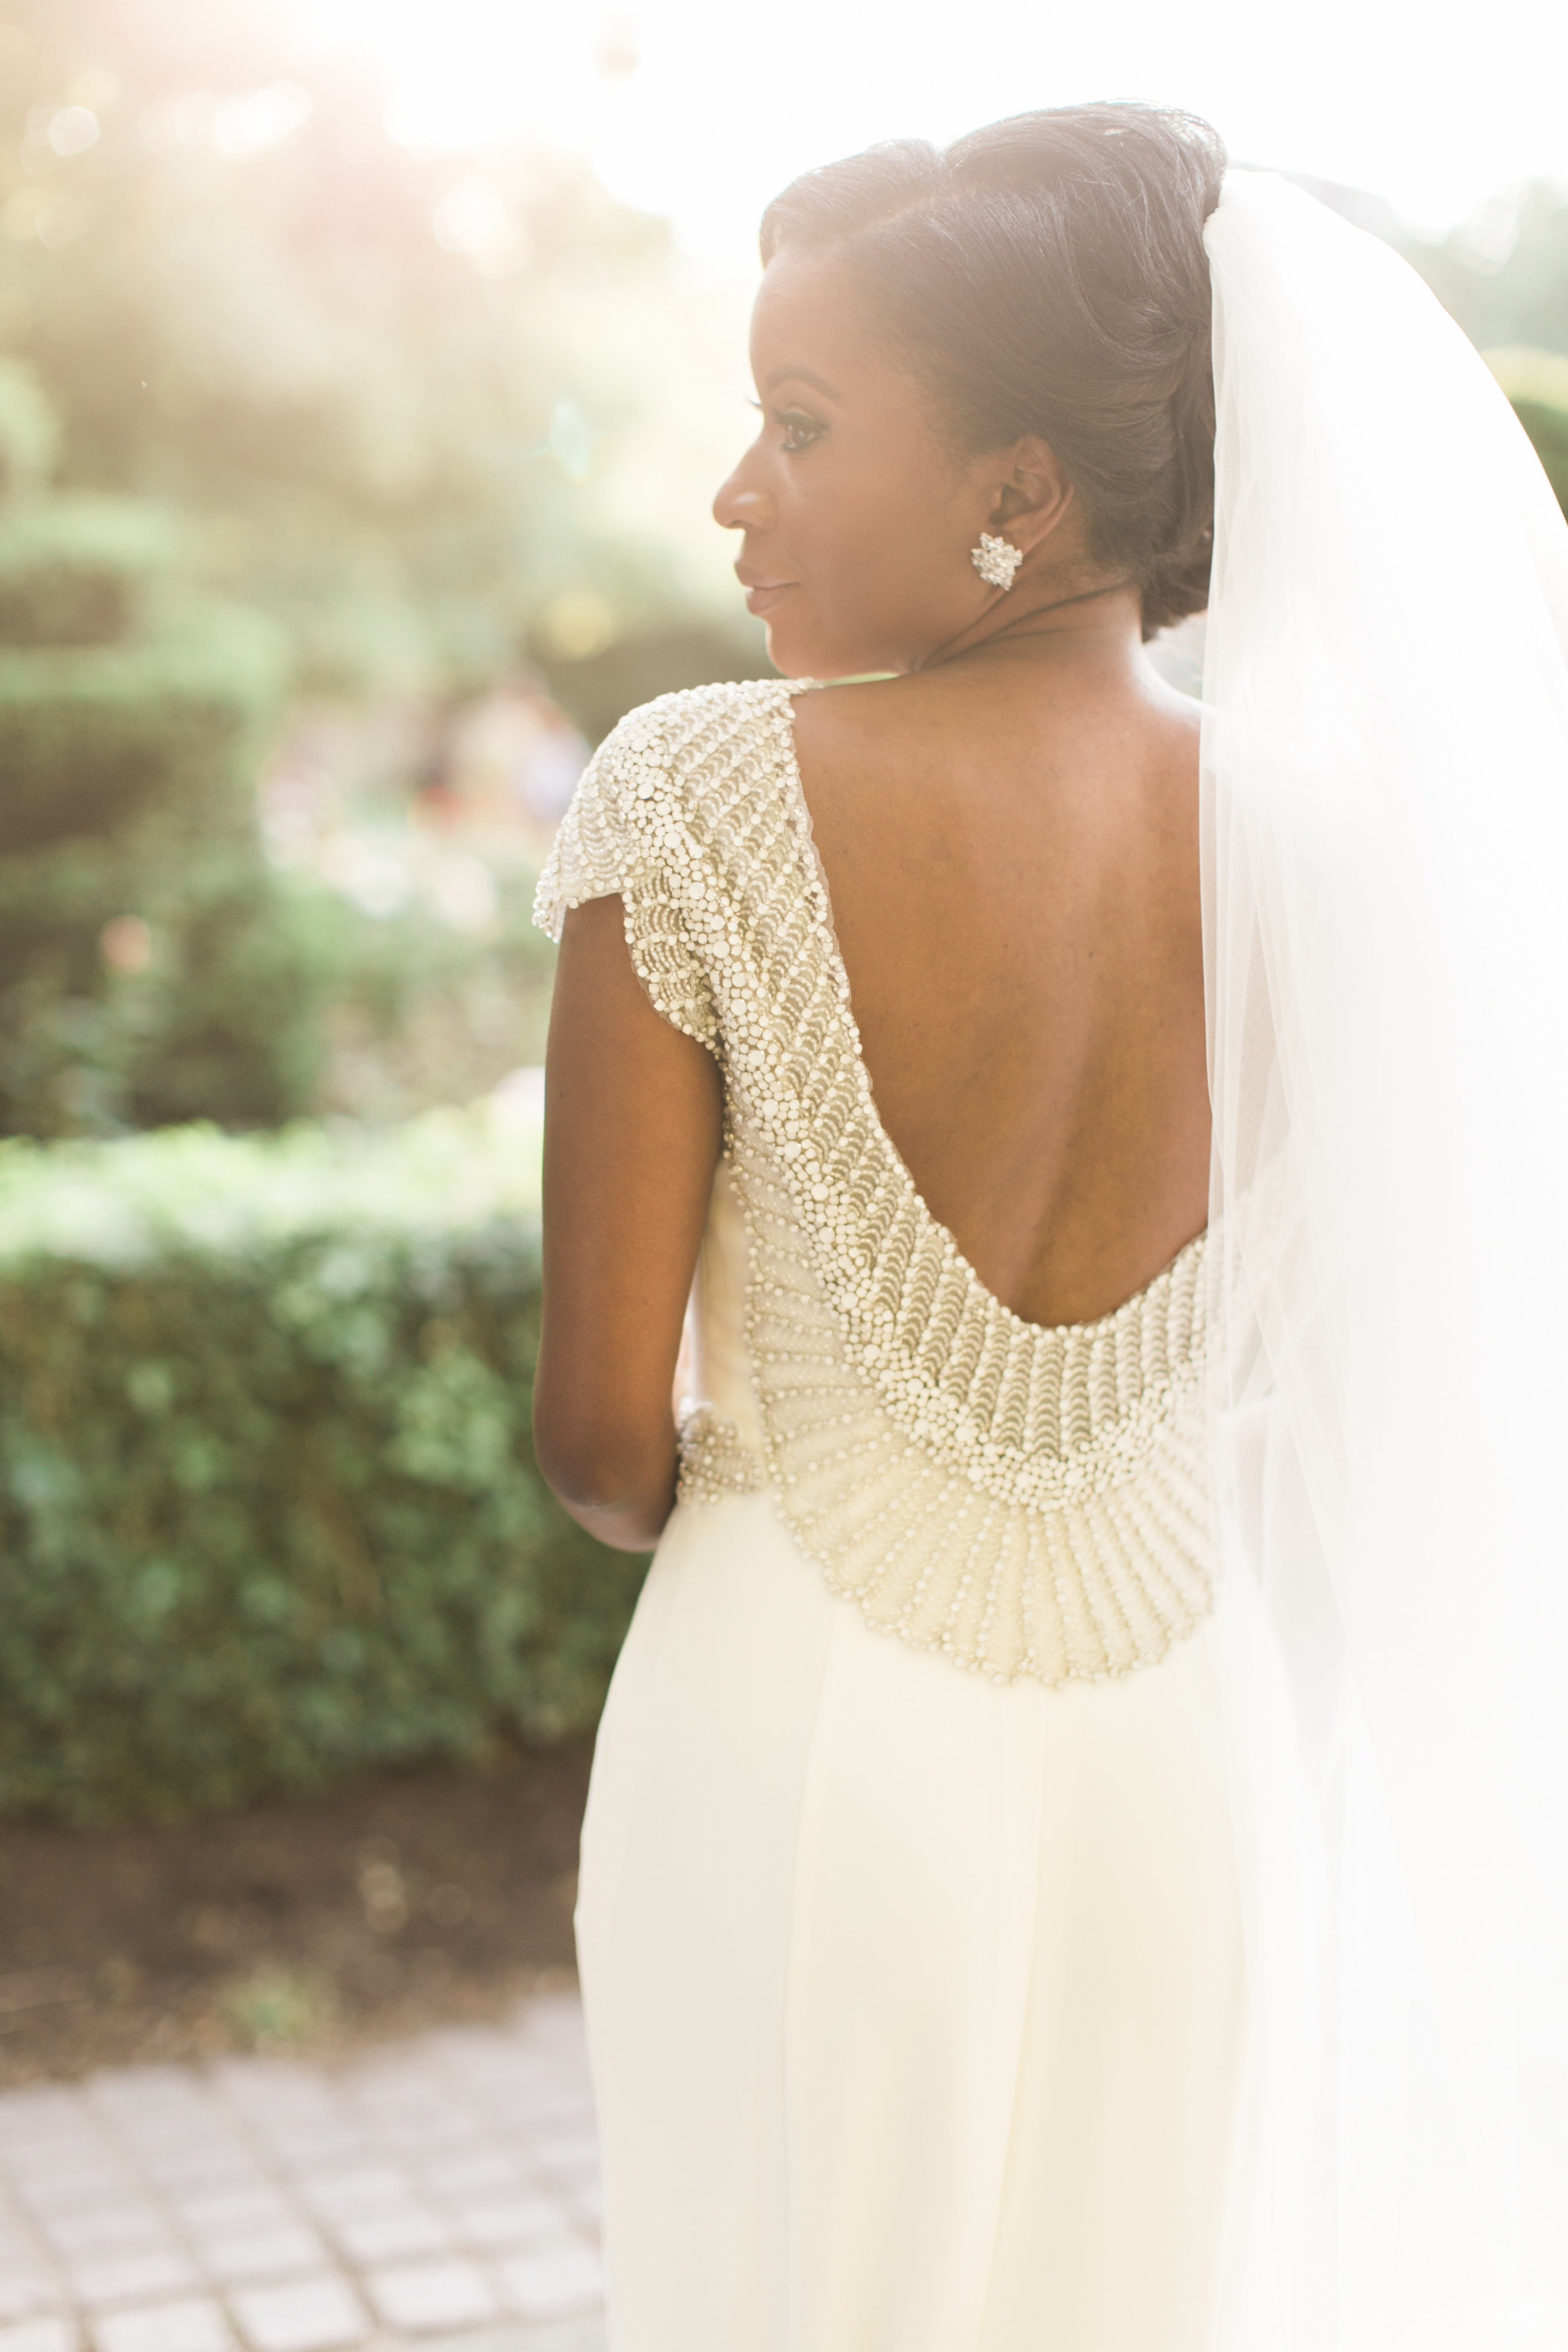 A Bride with a Beaded Open-Back Wedding Dress